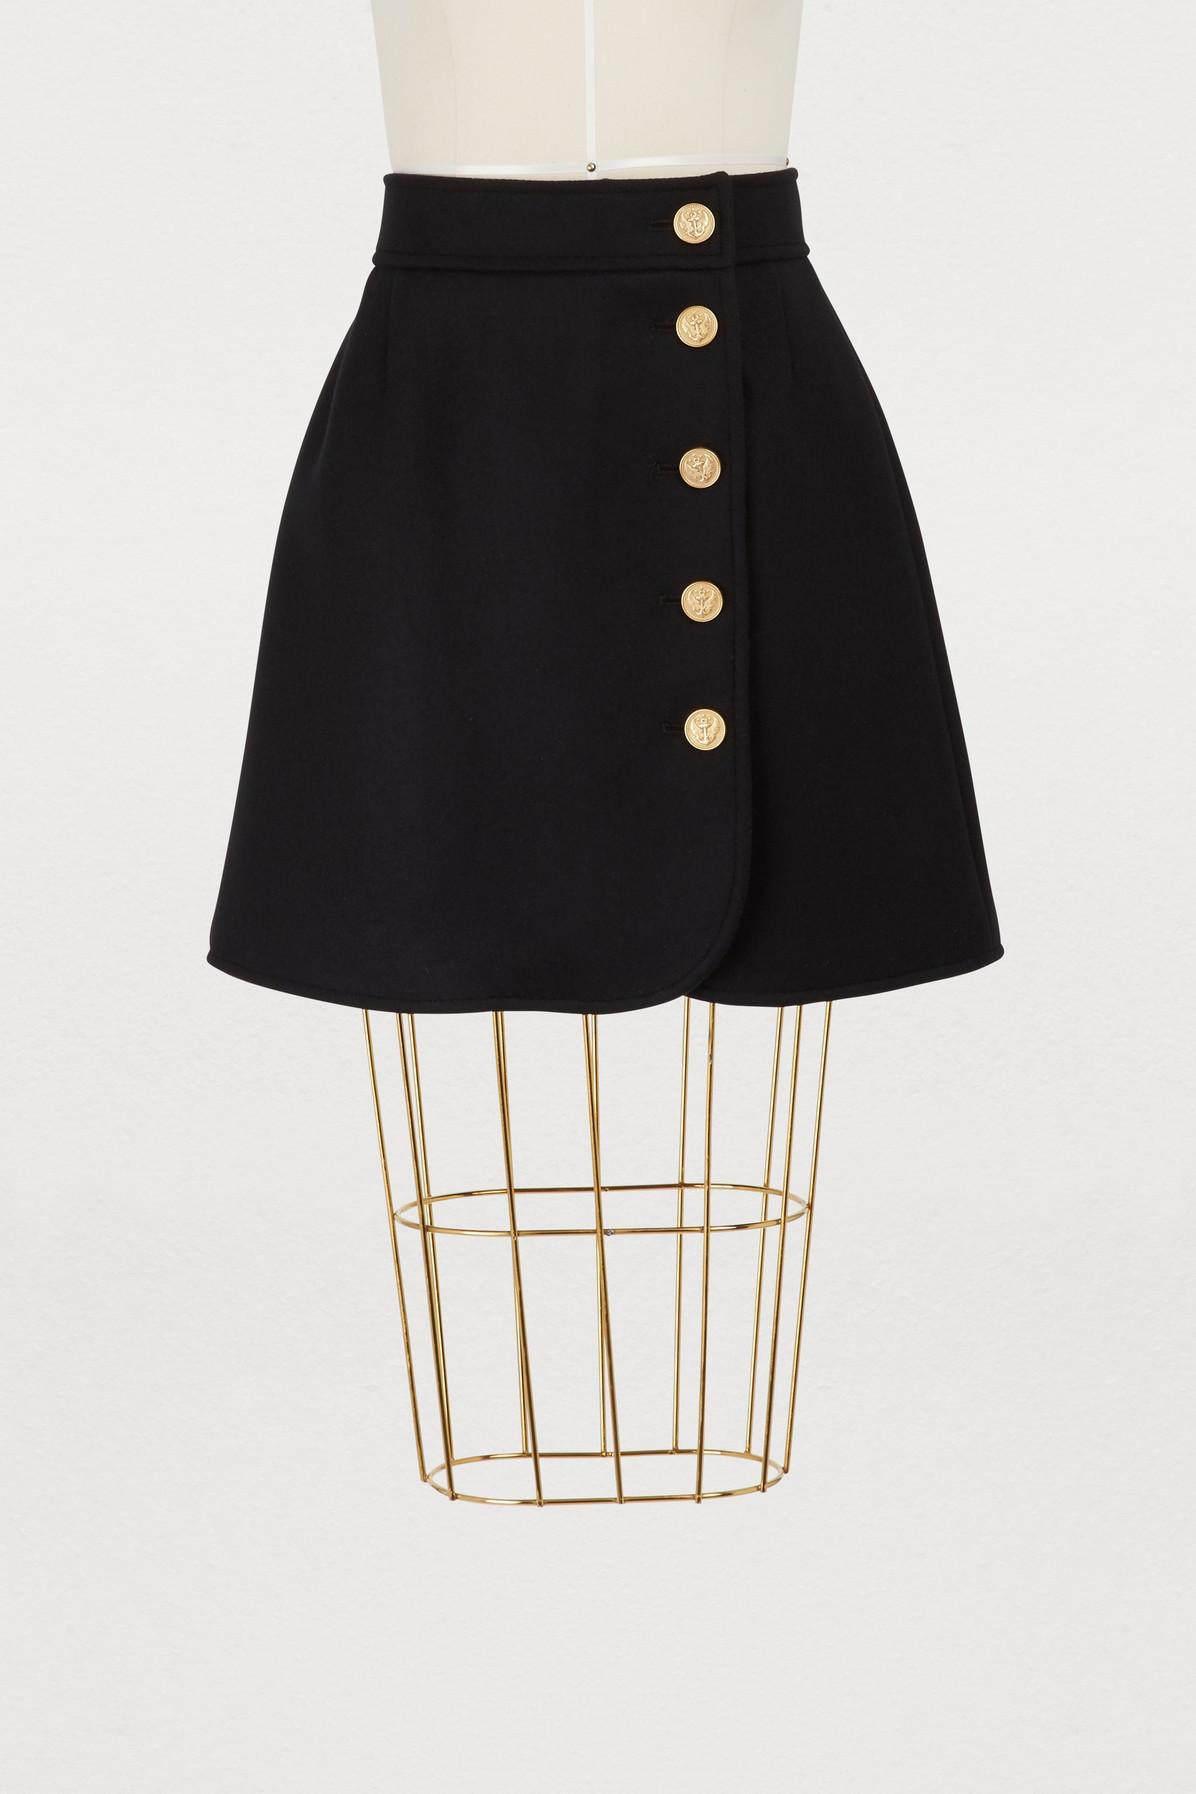 47290527b30f Red Valentino Wool Skirt With Gold Buttons In Nero | ModeSens